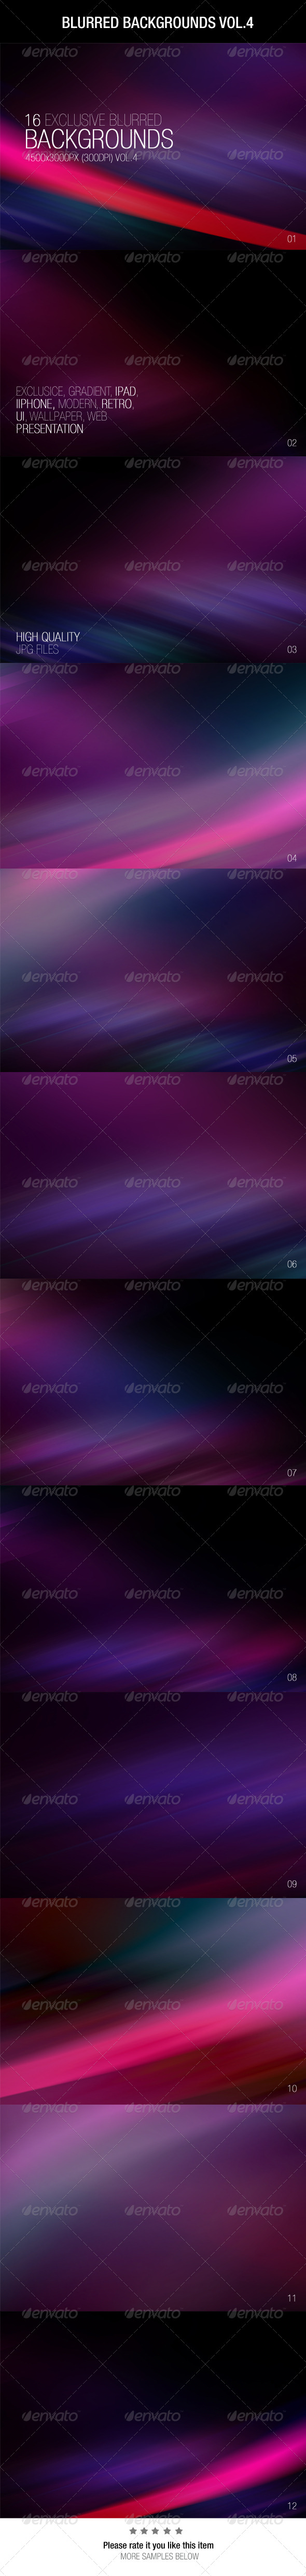 GraphicRiver Blurred Backgrounds Vol.4 6568666